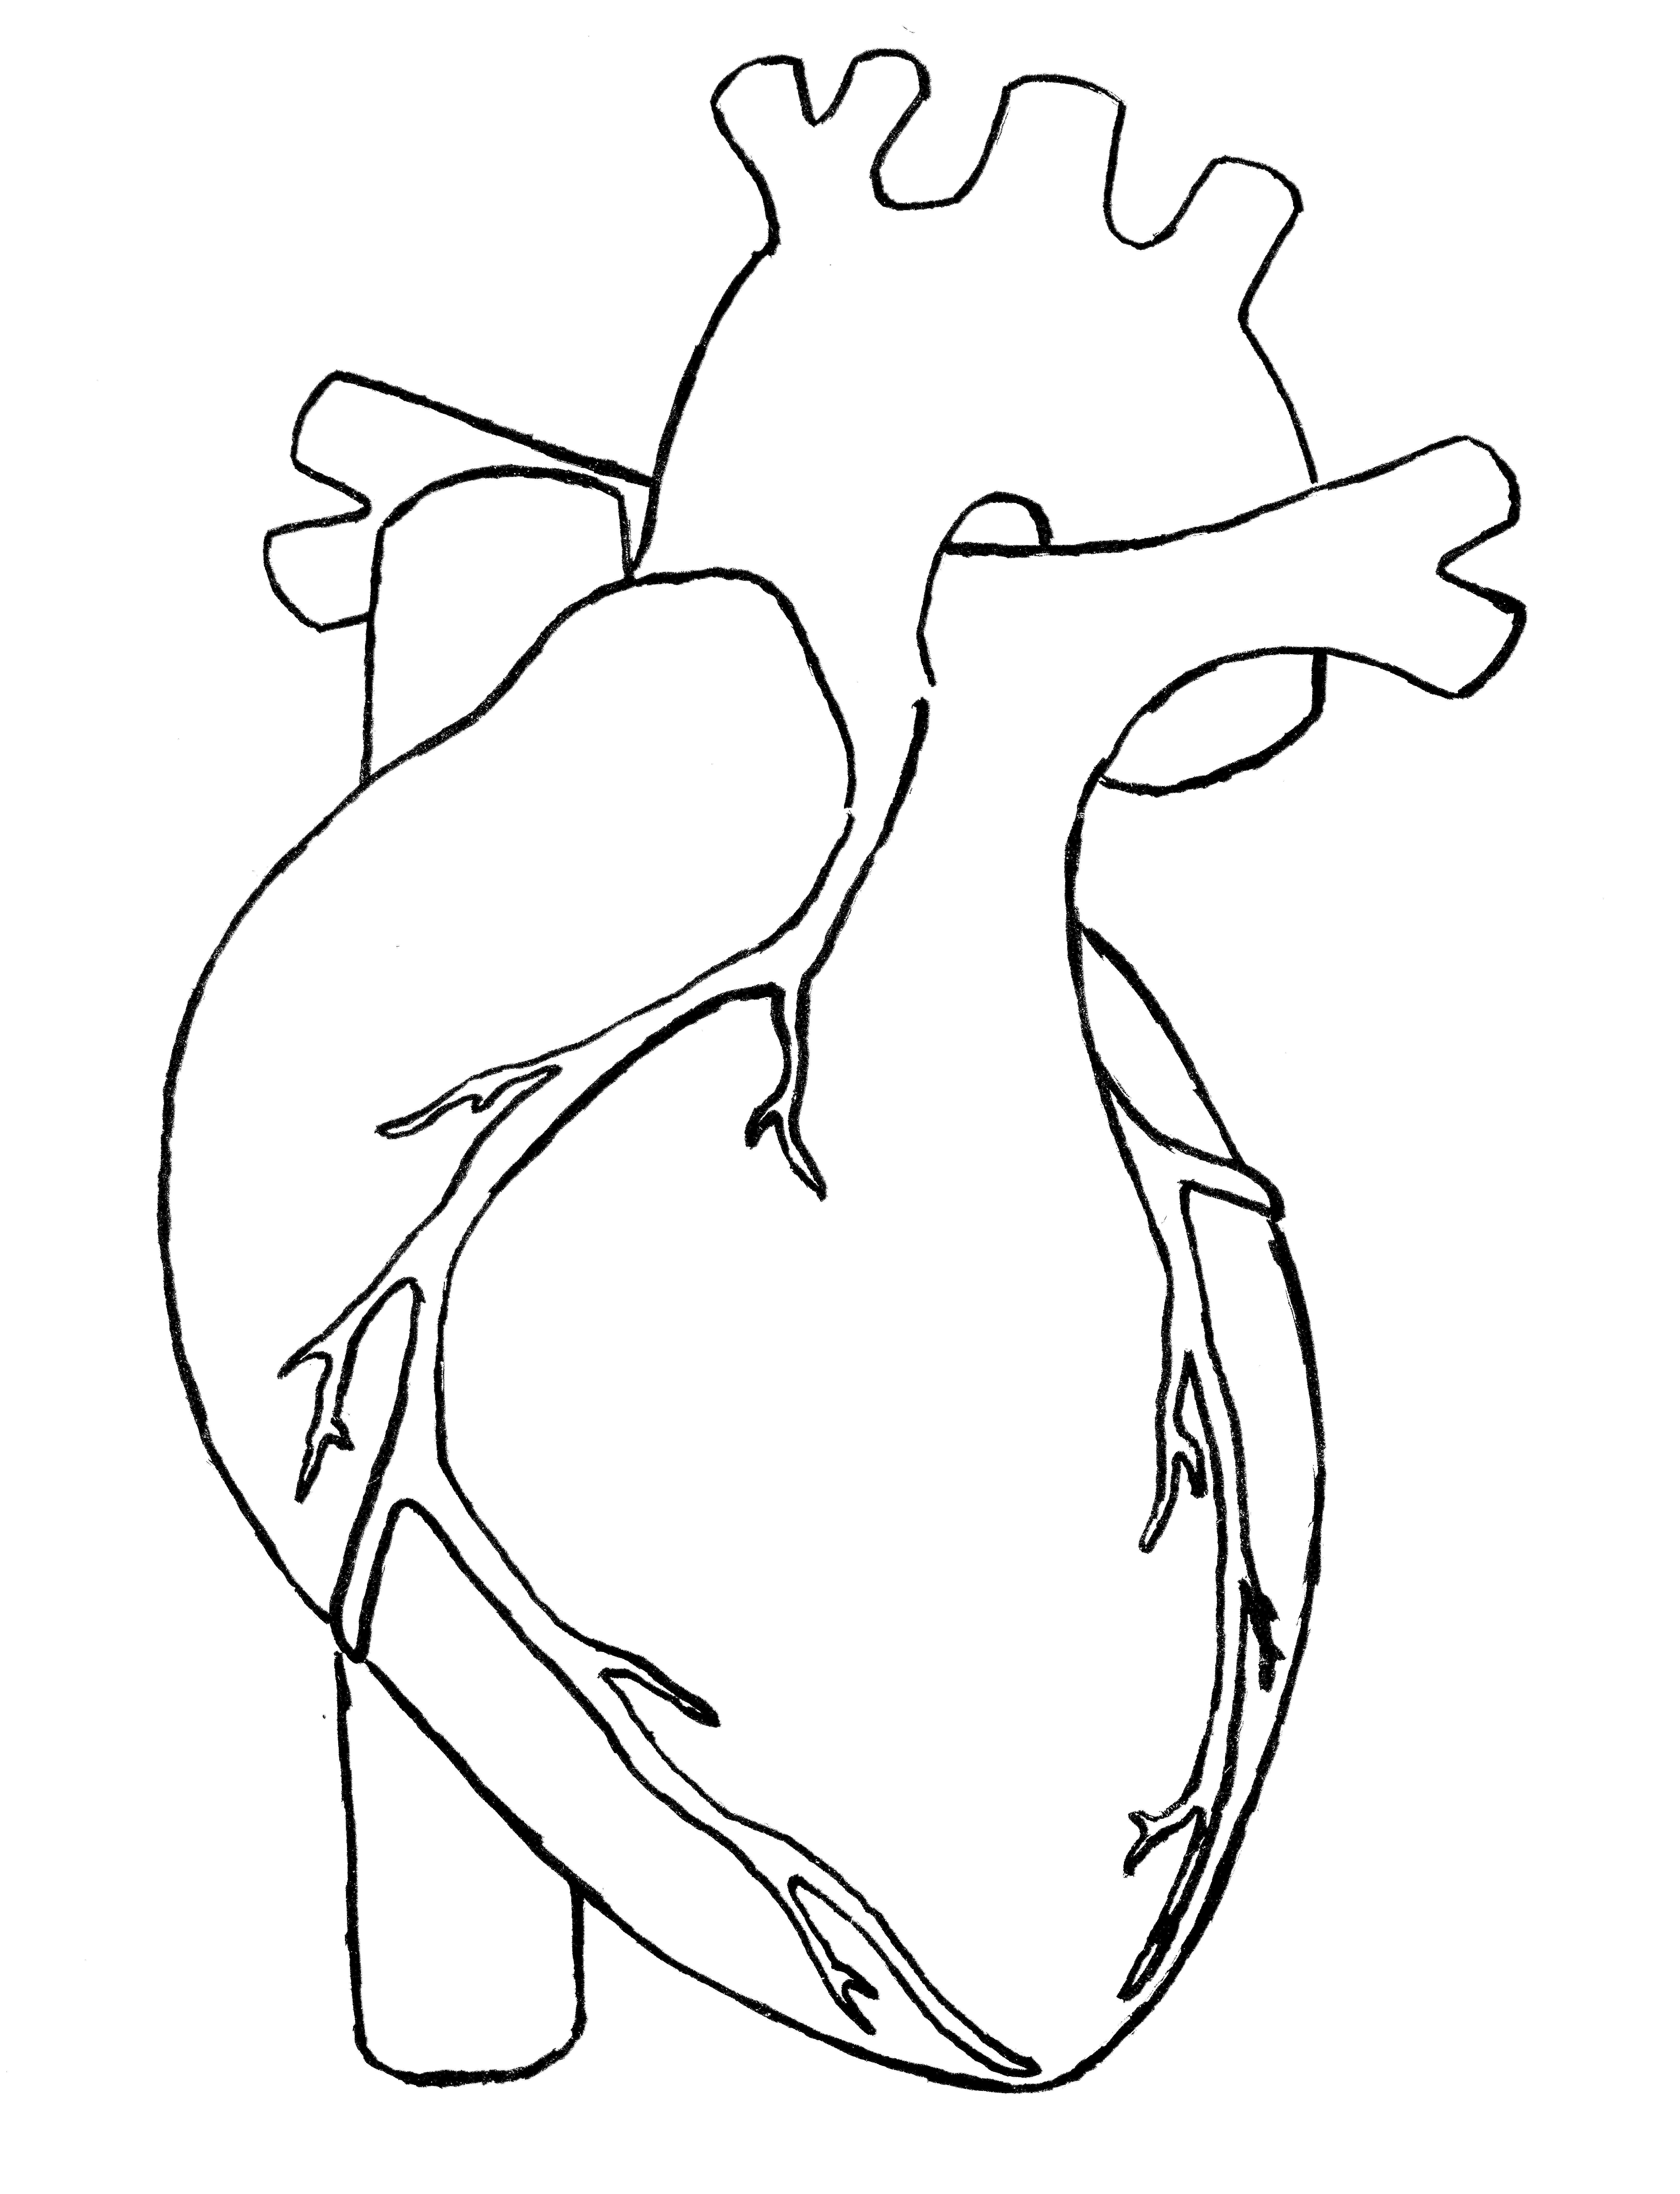 Drawing clipart heart. Line panda free images